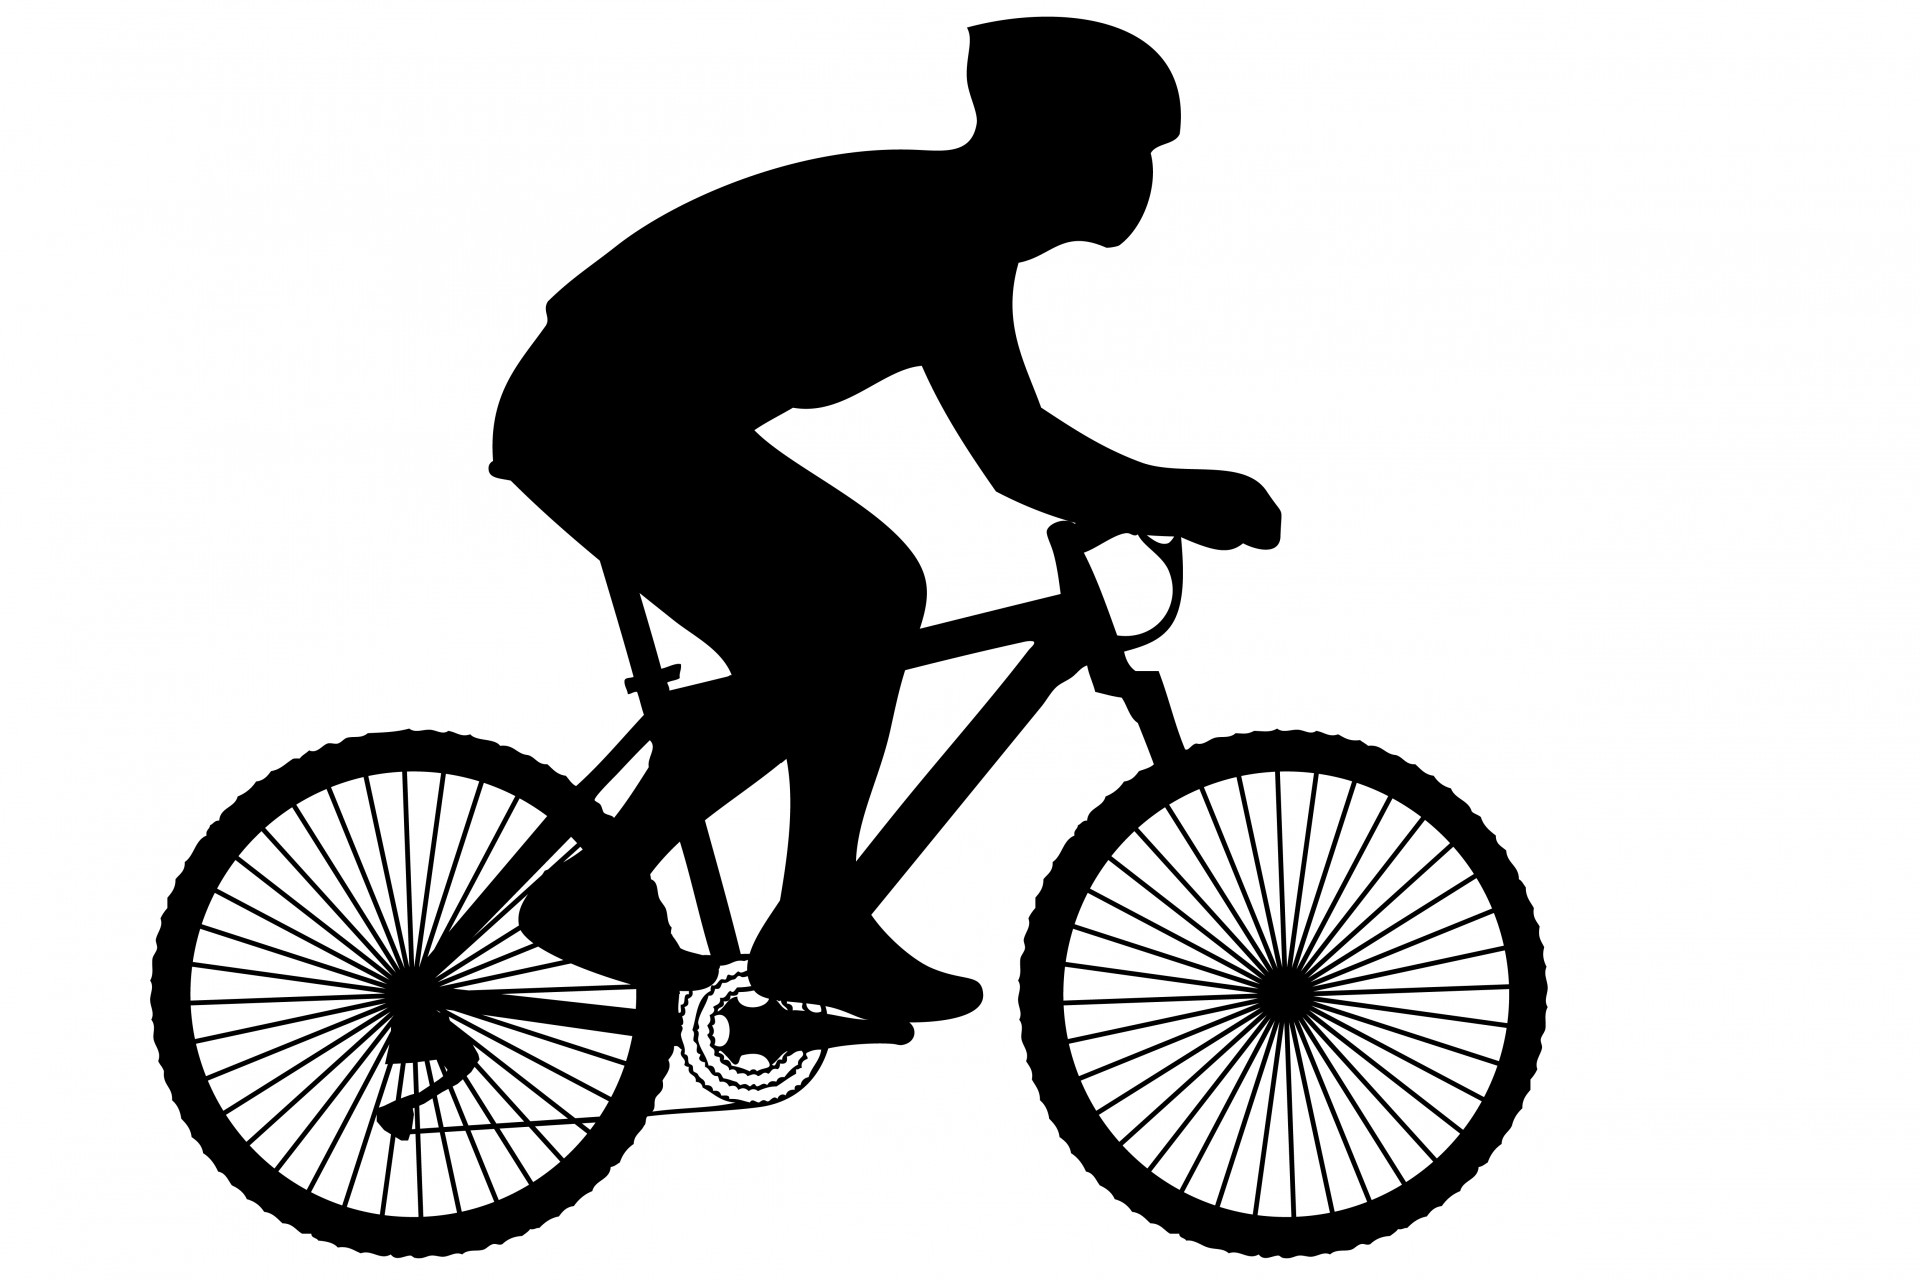 Free bicycle cliparts download. Bike clipart bike rider